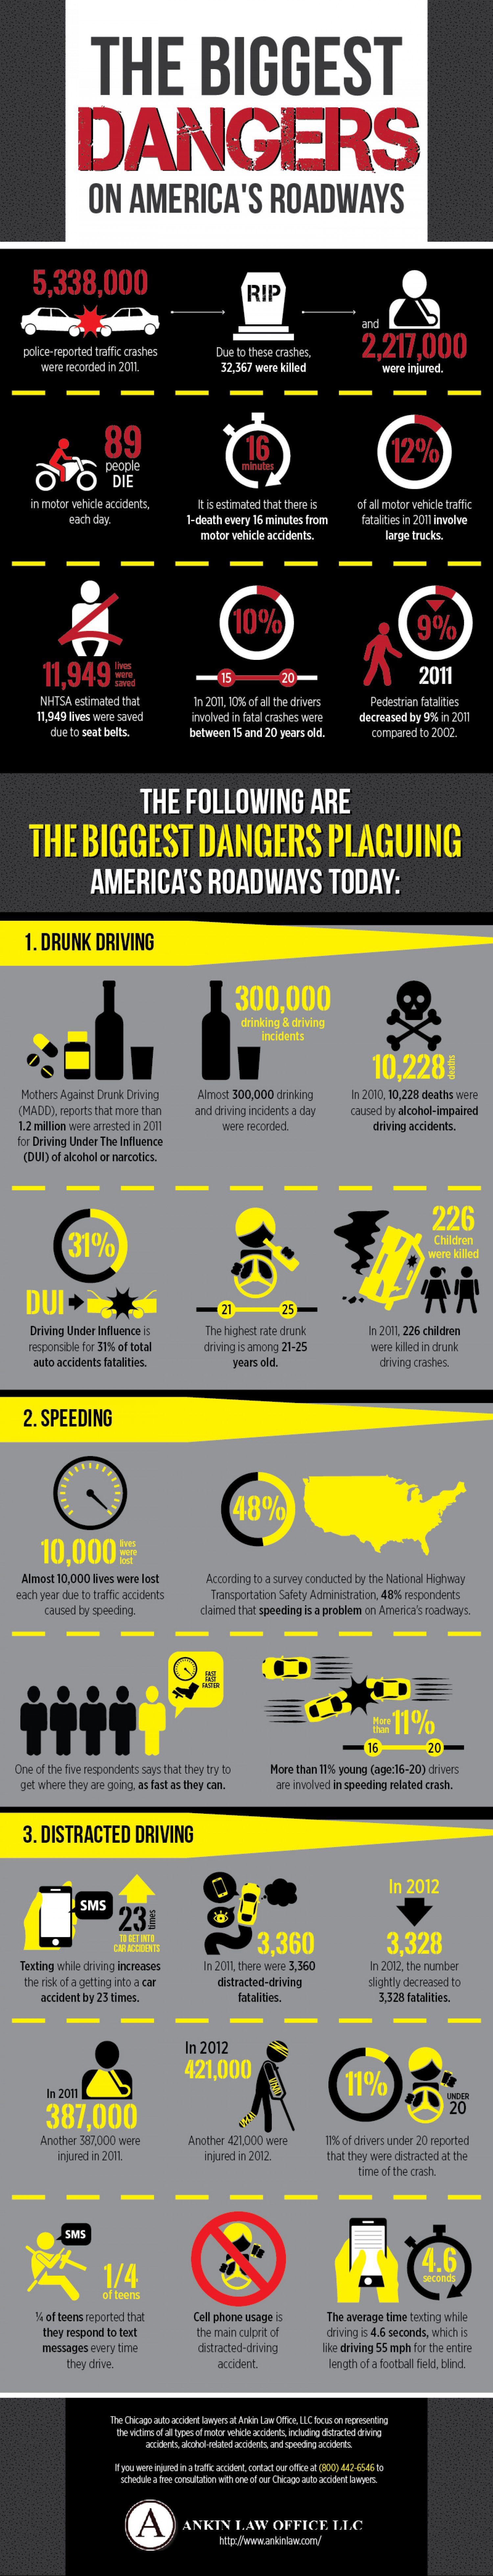 The Biggest Dangers on America's Roadways Infographic